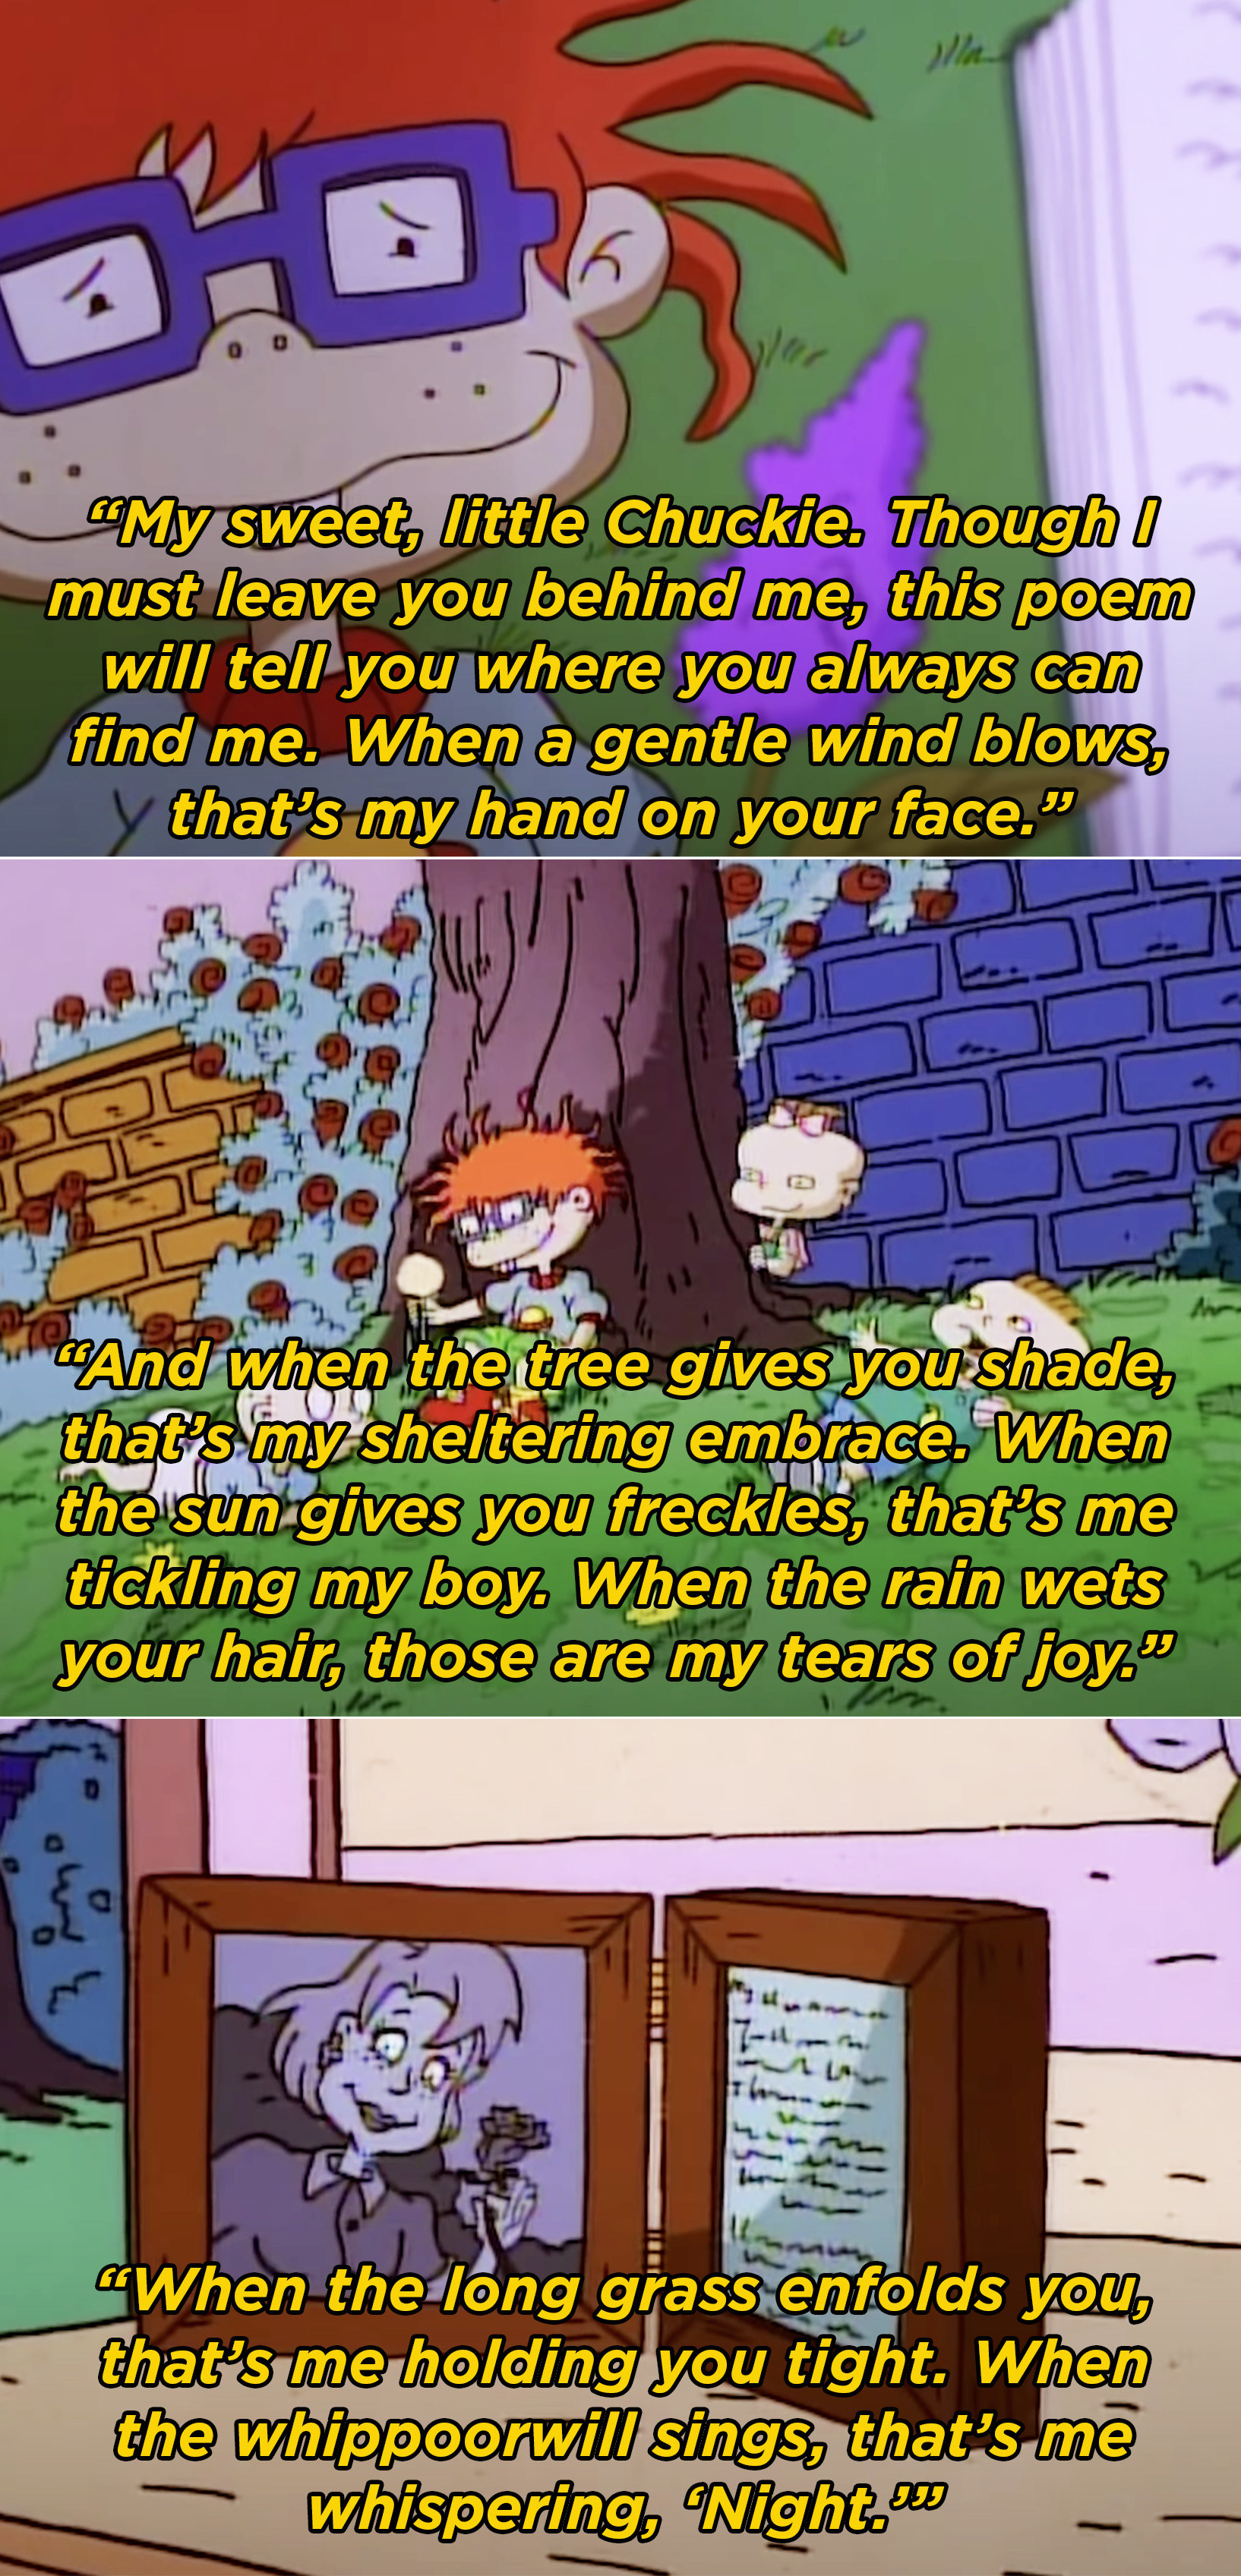 Chuckie's mom's poem saying that she will always be with him